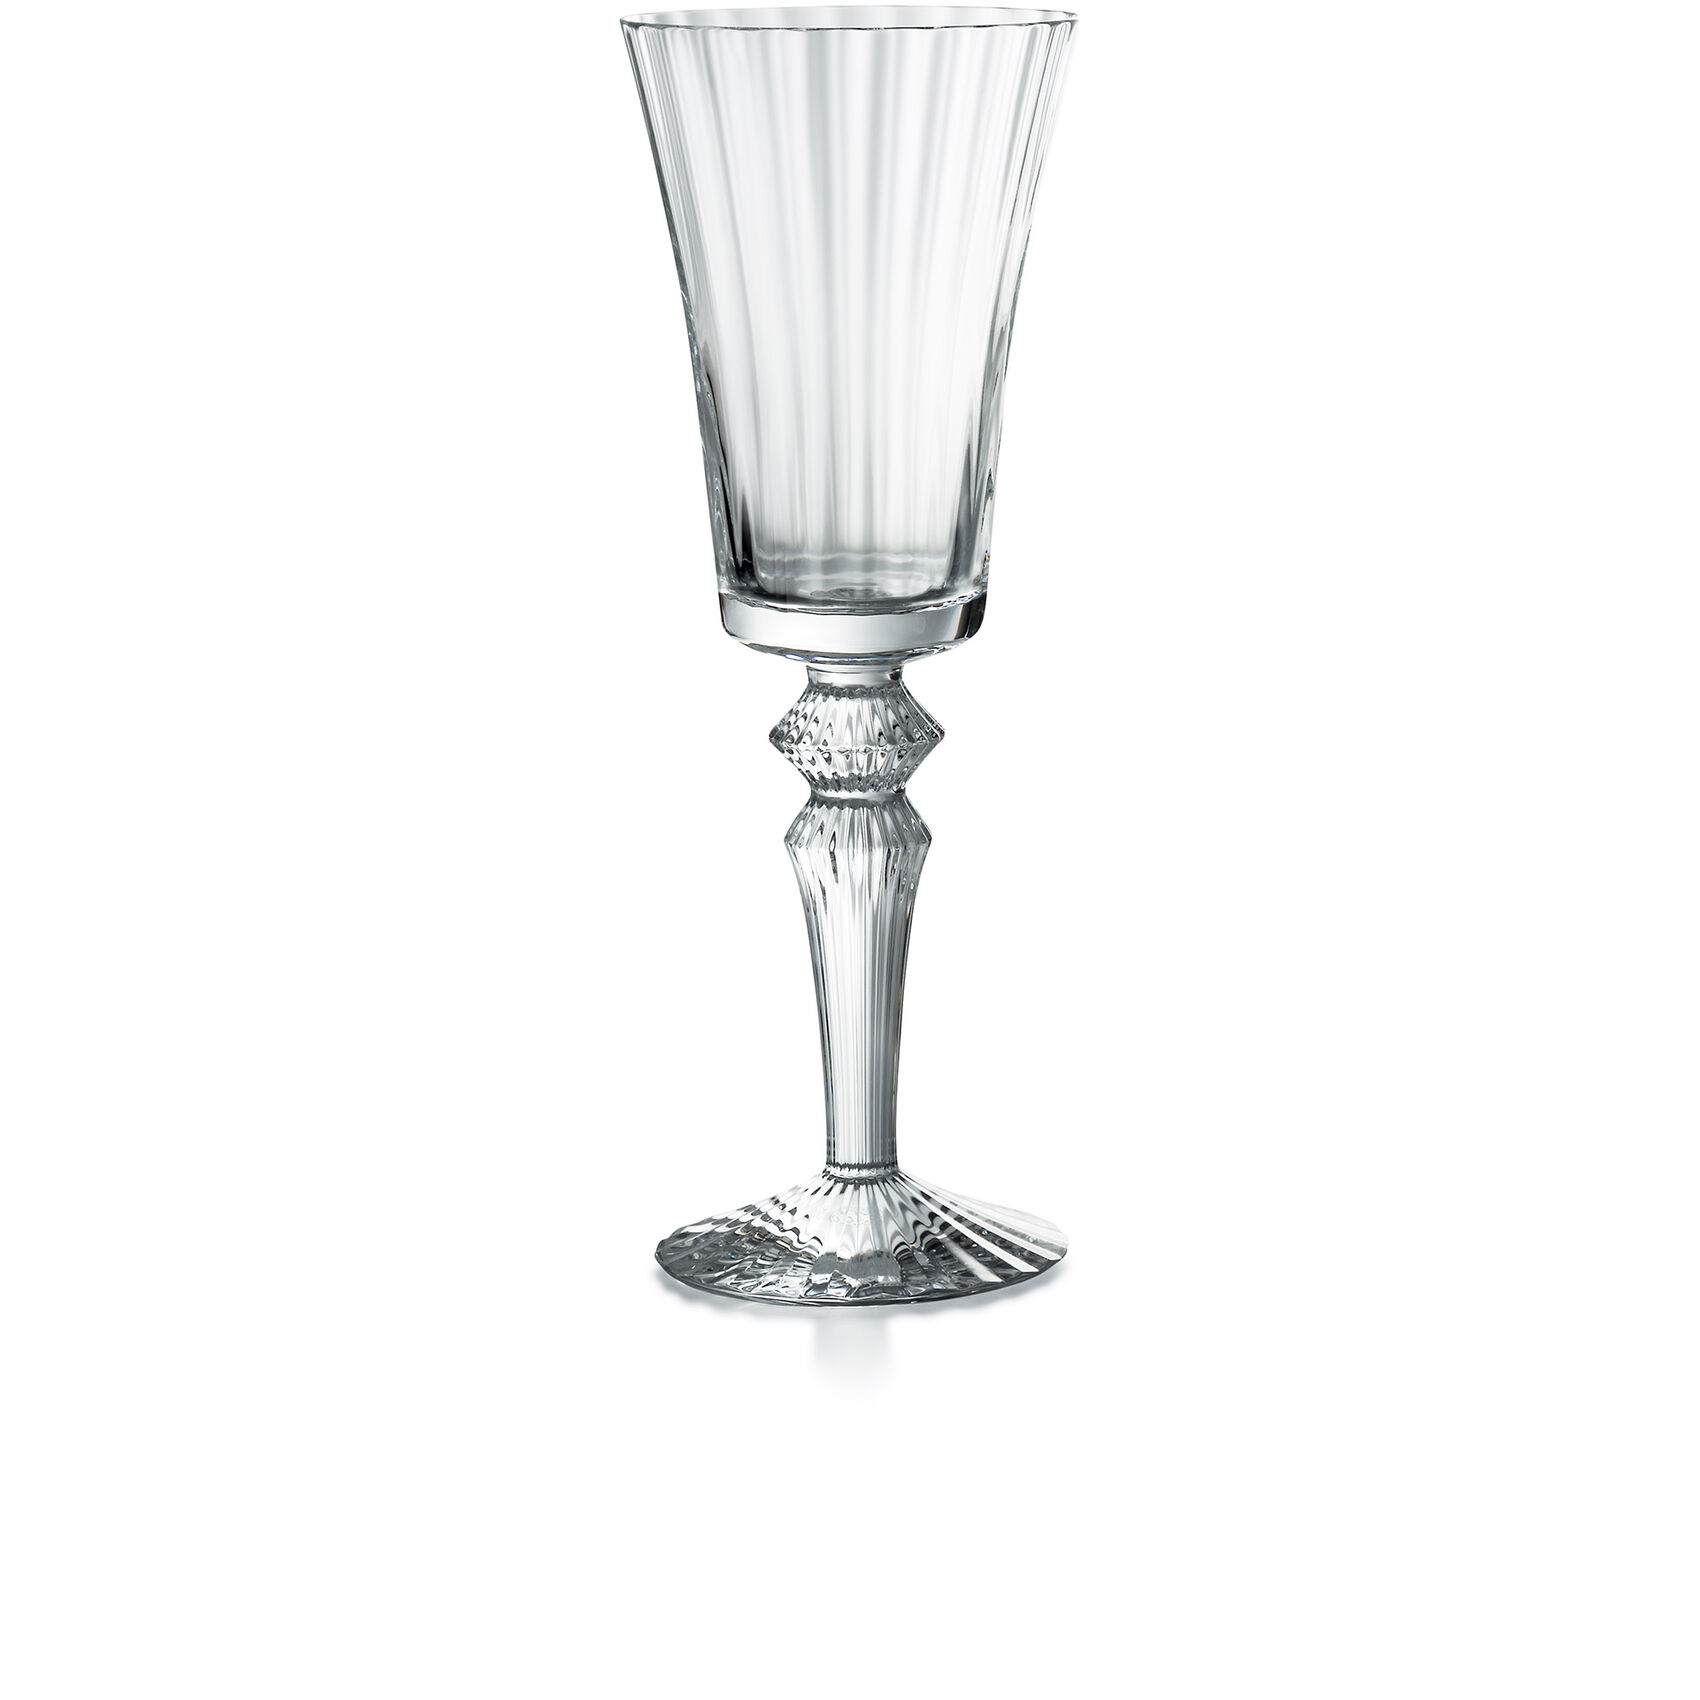 Mille Nuits Glass - Baccarat